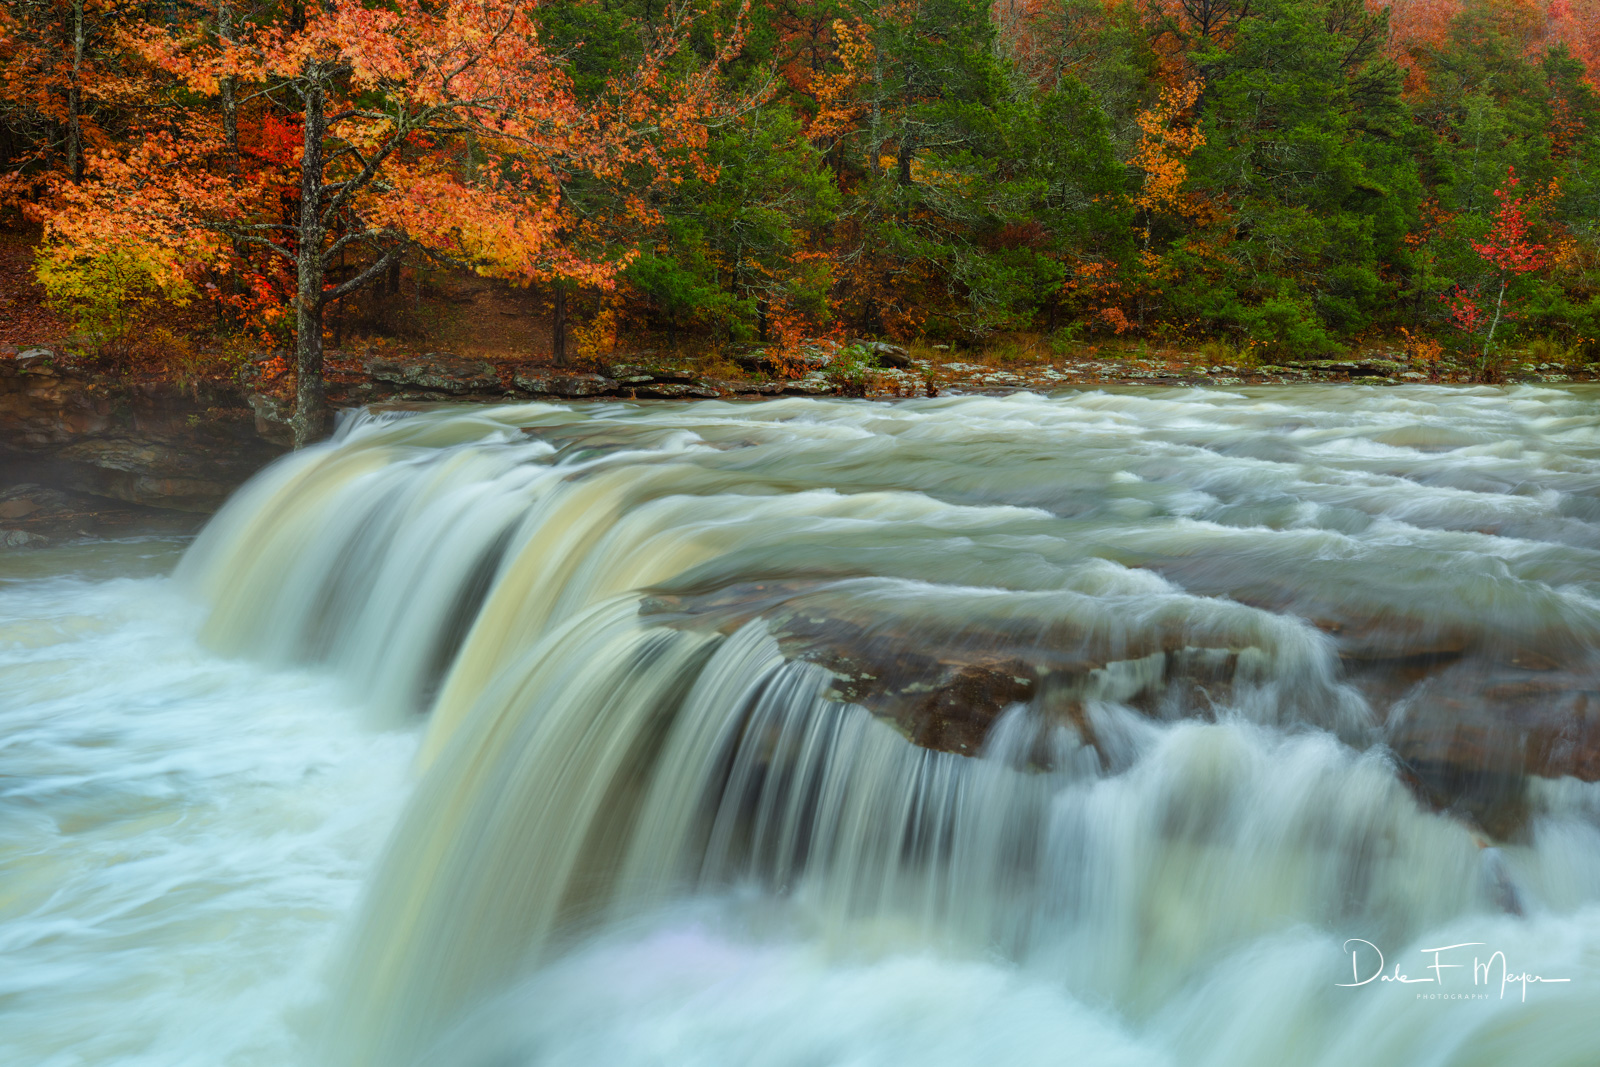 Fall 2018, Falling Water Falls, River Streams and Waterfalls Gallery. Ozark National Forest Arka, high water